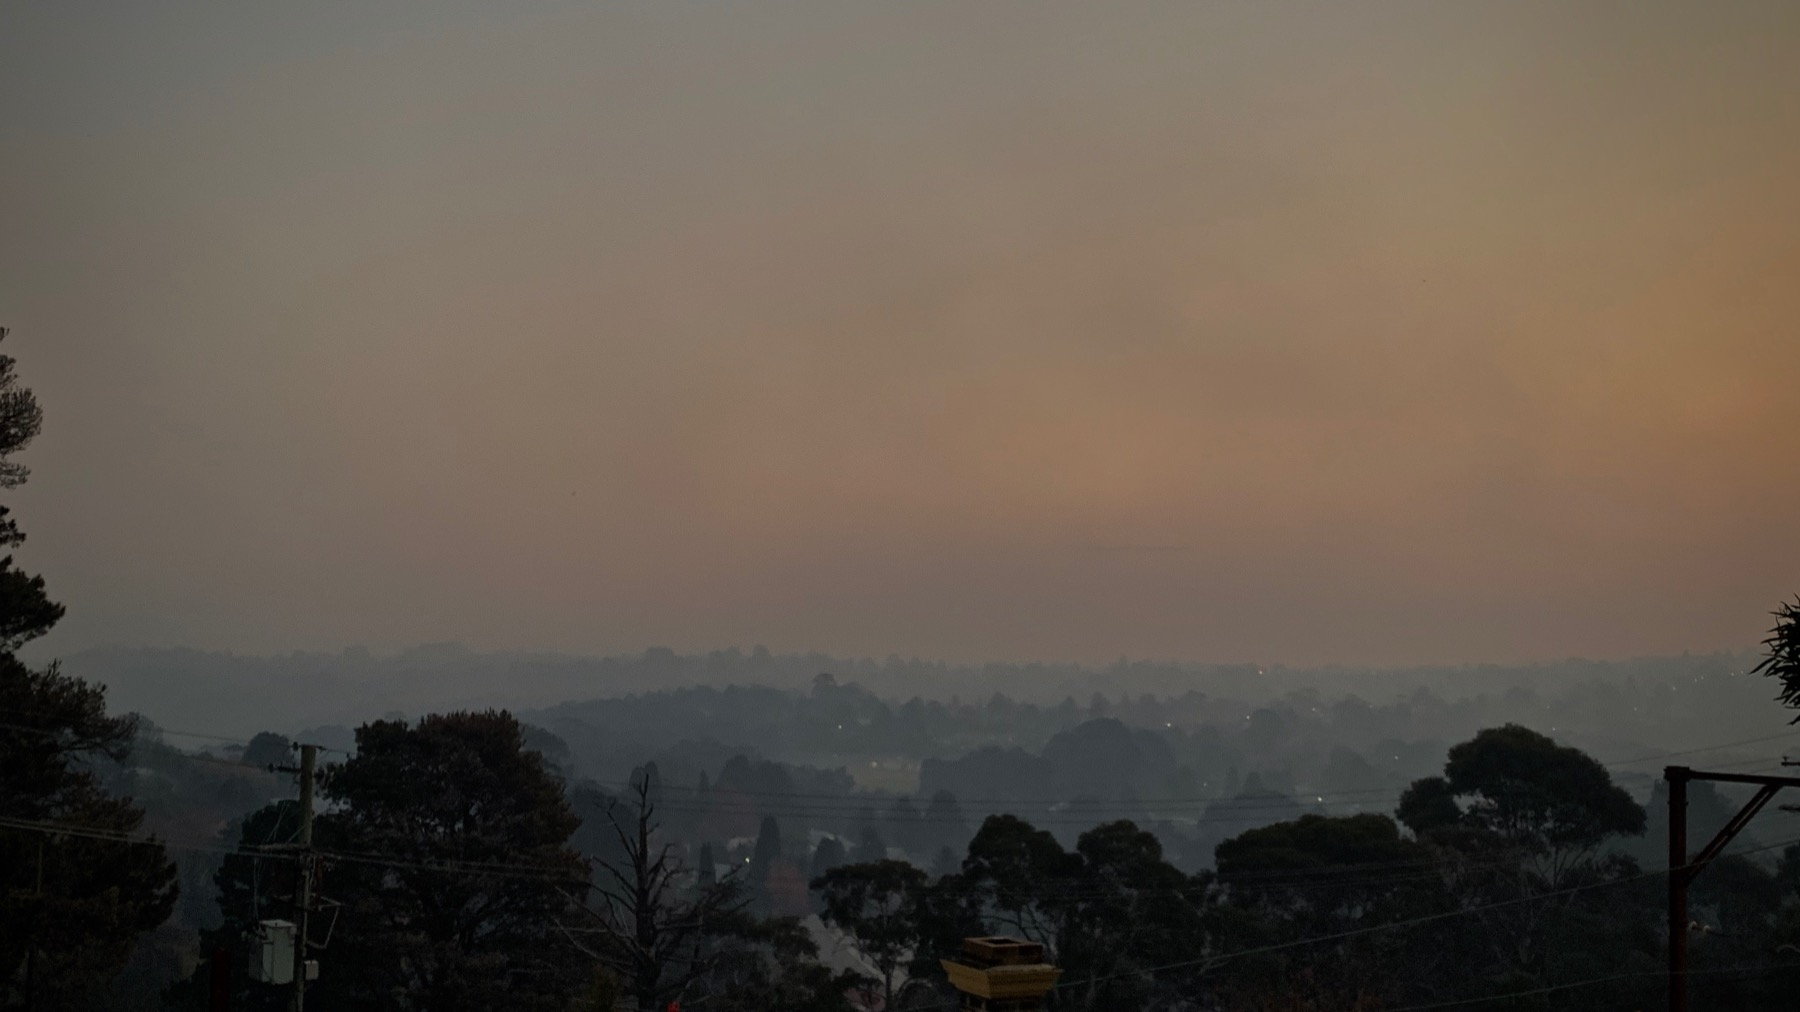 Leura in a Smoky Dusk